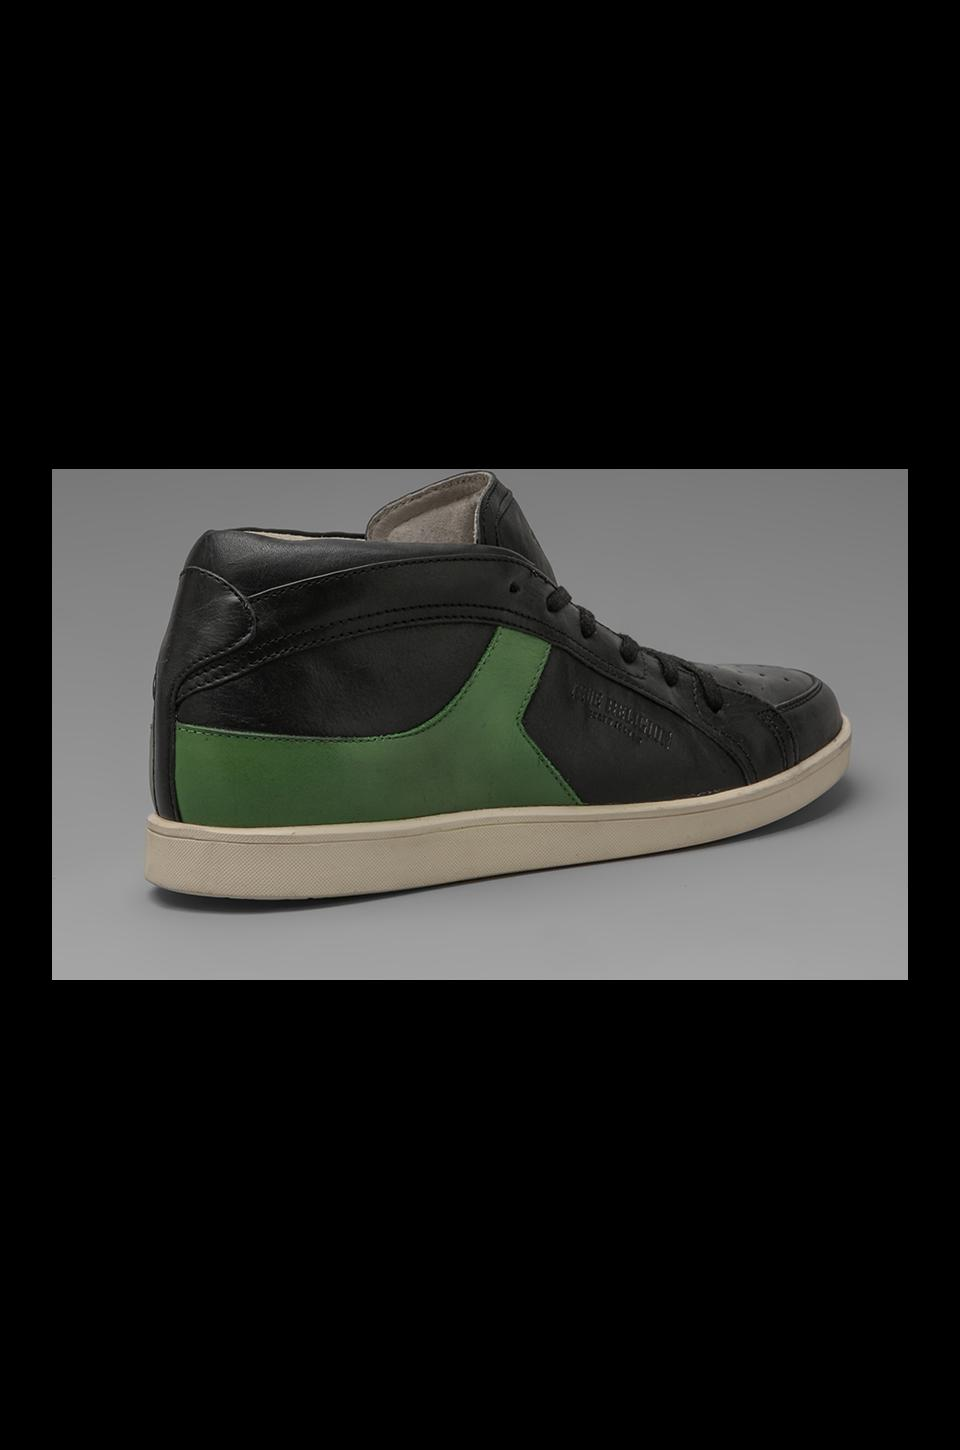 True Religion Lincoln Mid Sneaker in Black/Green